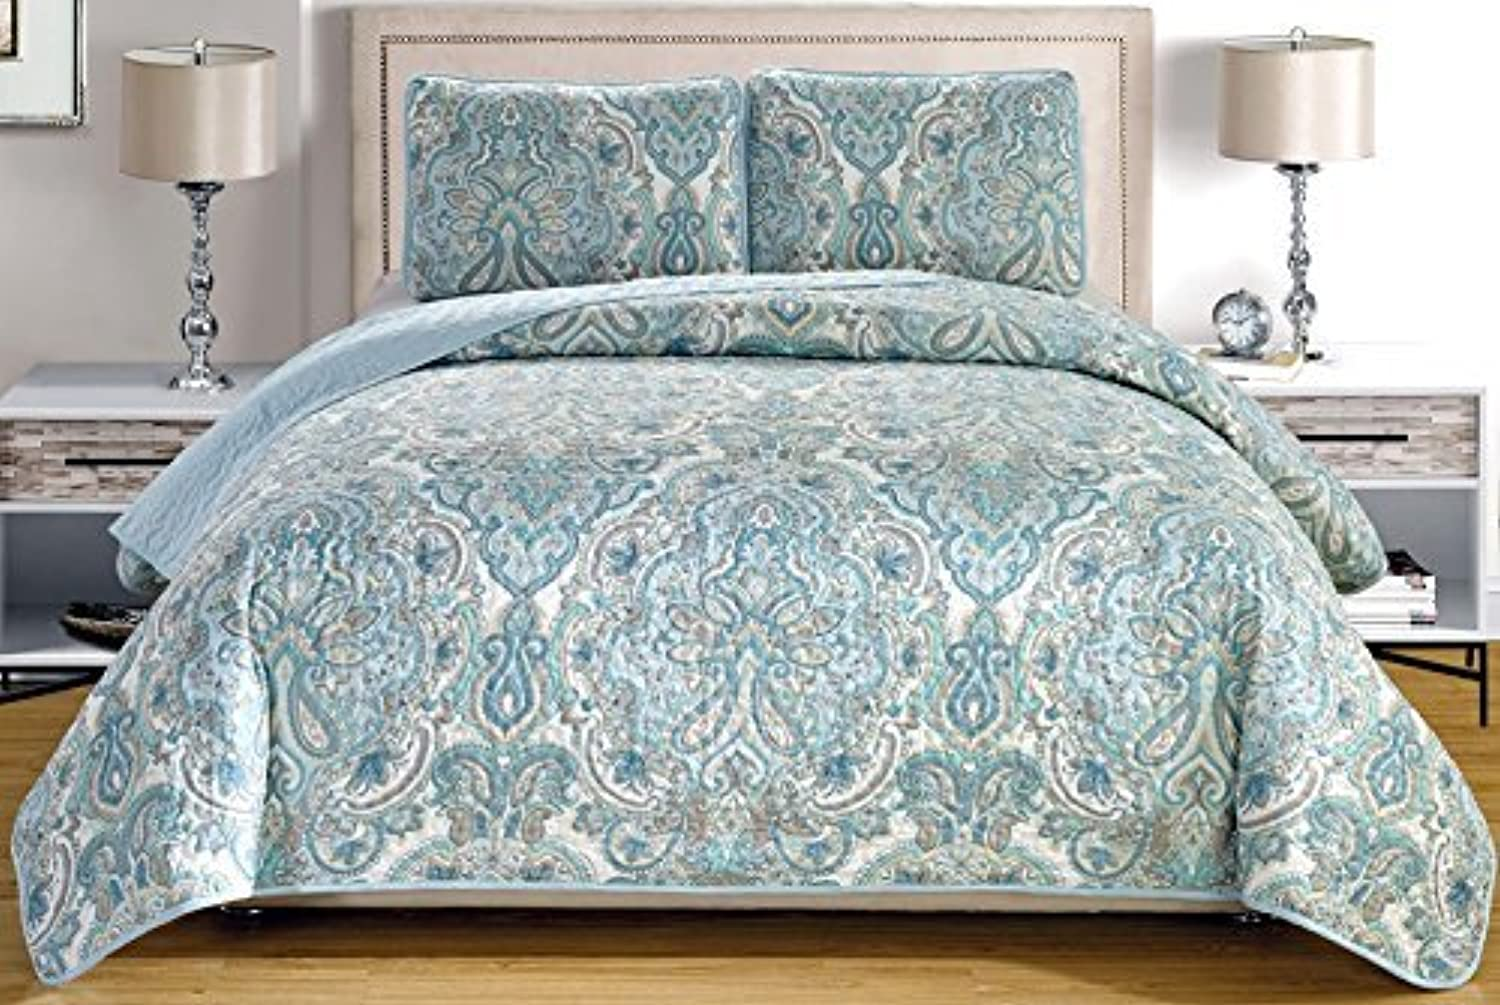 3-Piece Fine Printed Oversize (Double) Full Size (100  X 95 ) Quilt Set Reversible Bedspread Coverlet Oversize Bed Cover (Pale bluee, Grey, Paisley)